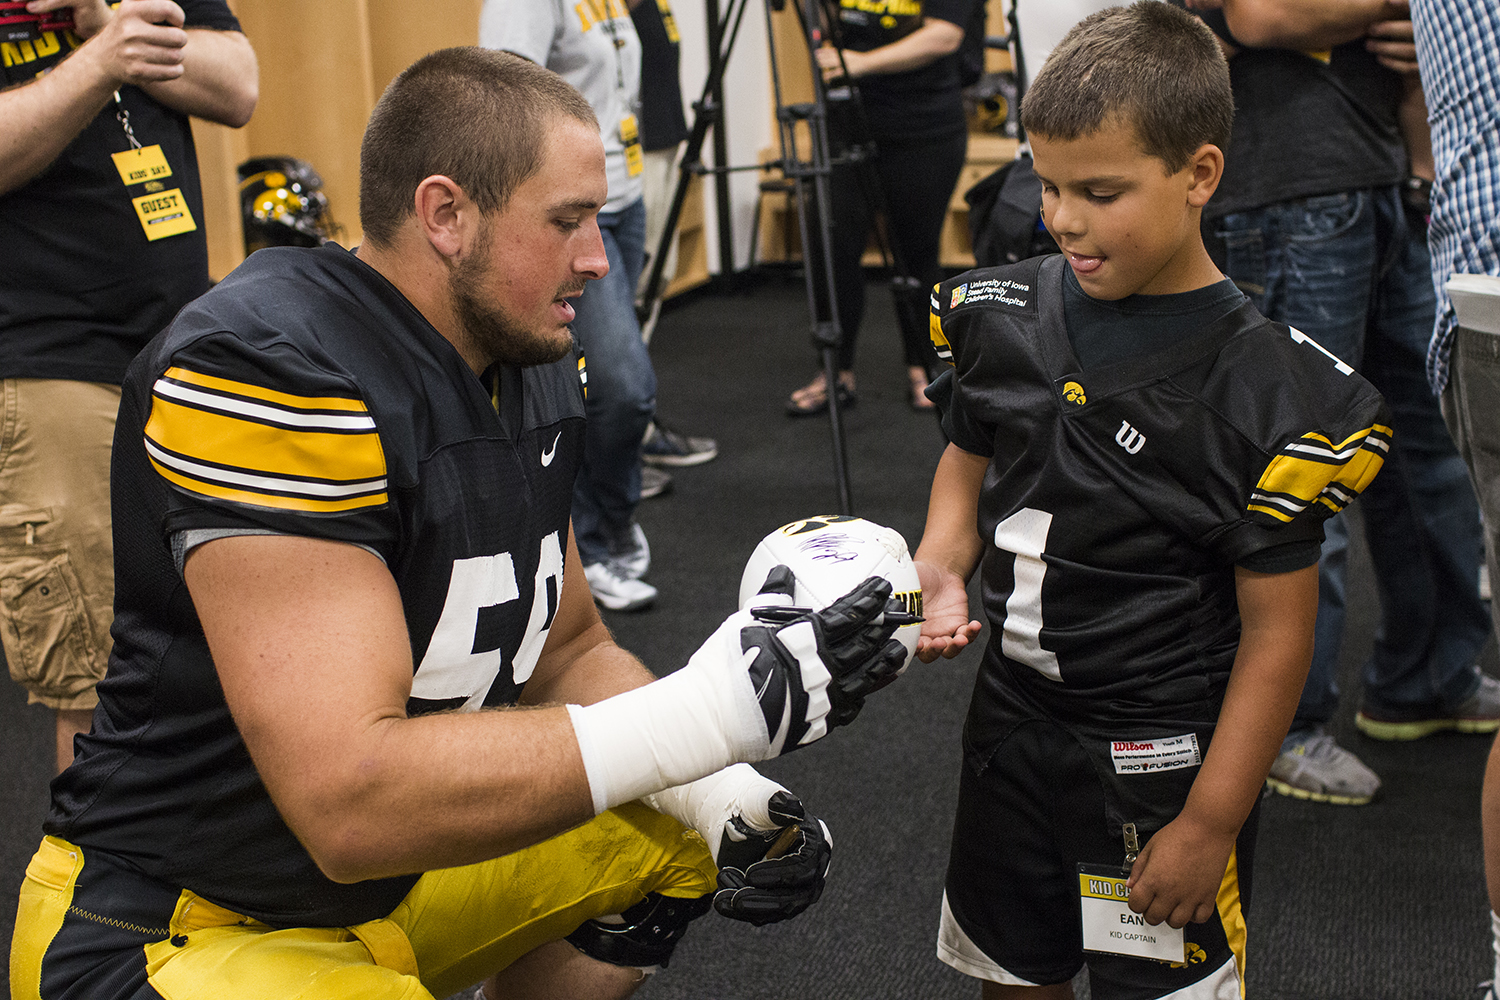 Offensive lineman Ross Reynolds (left) signs a football for Kid Captain Ean Gorsh (right) during Iowa Football Kid's Day at Kinnick Stadium on Saturday, August 11, 2018. The 2018 Kid Captains met the Iowa football team and participated in a behind-the-scenes tour of Kinnick Stadium. Each child's story will be featured throughout the 2018 Iowa football season.